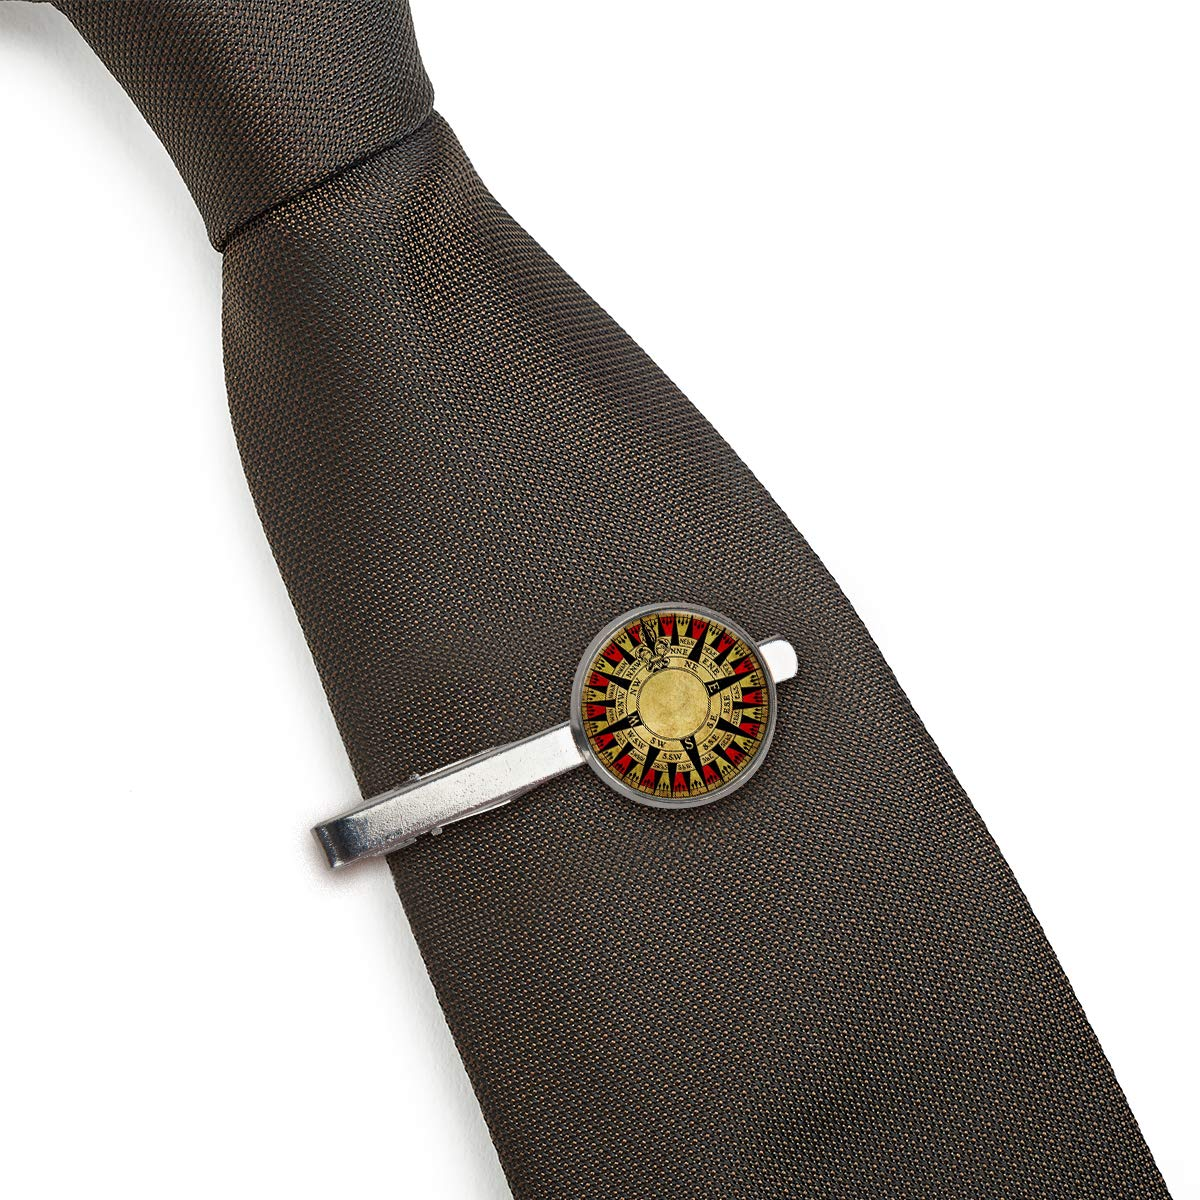 LooPoP Men Tie Clip Retro Digital Compass Stainless Tie Pins for Business Wedding Shirts Tie Clips Include Gift Box